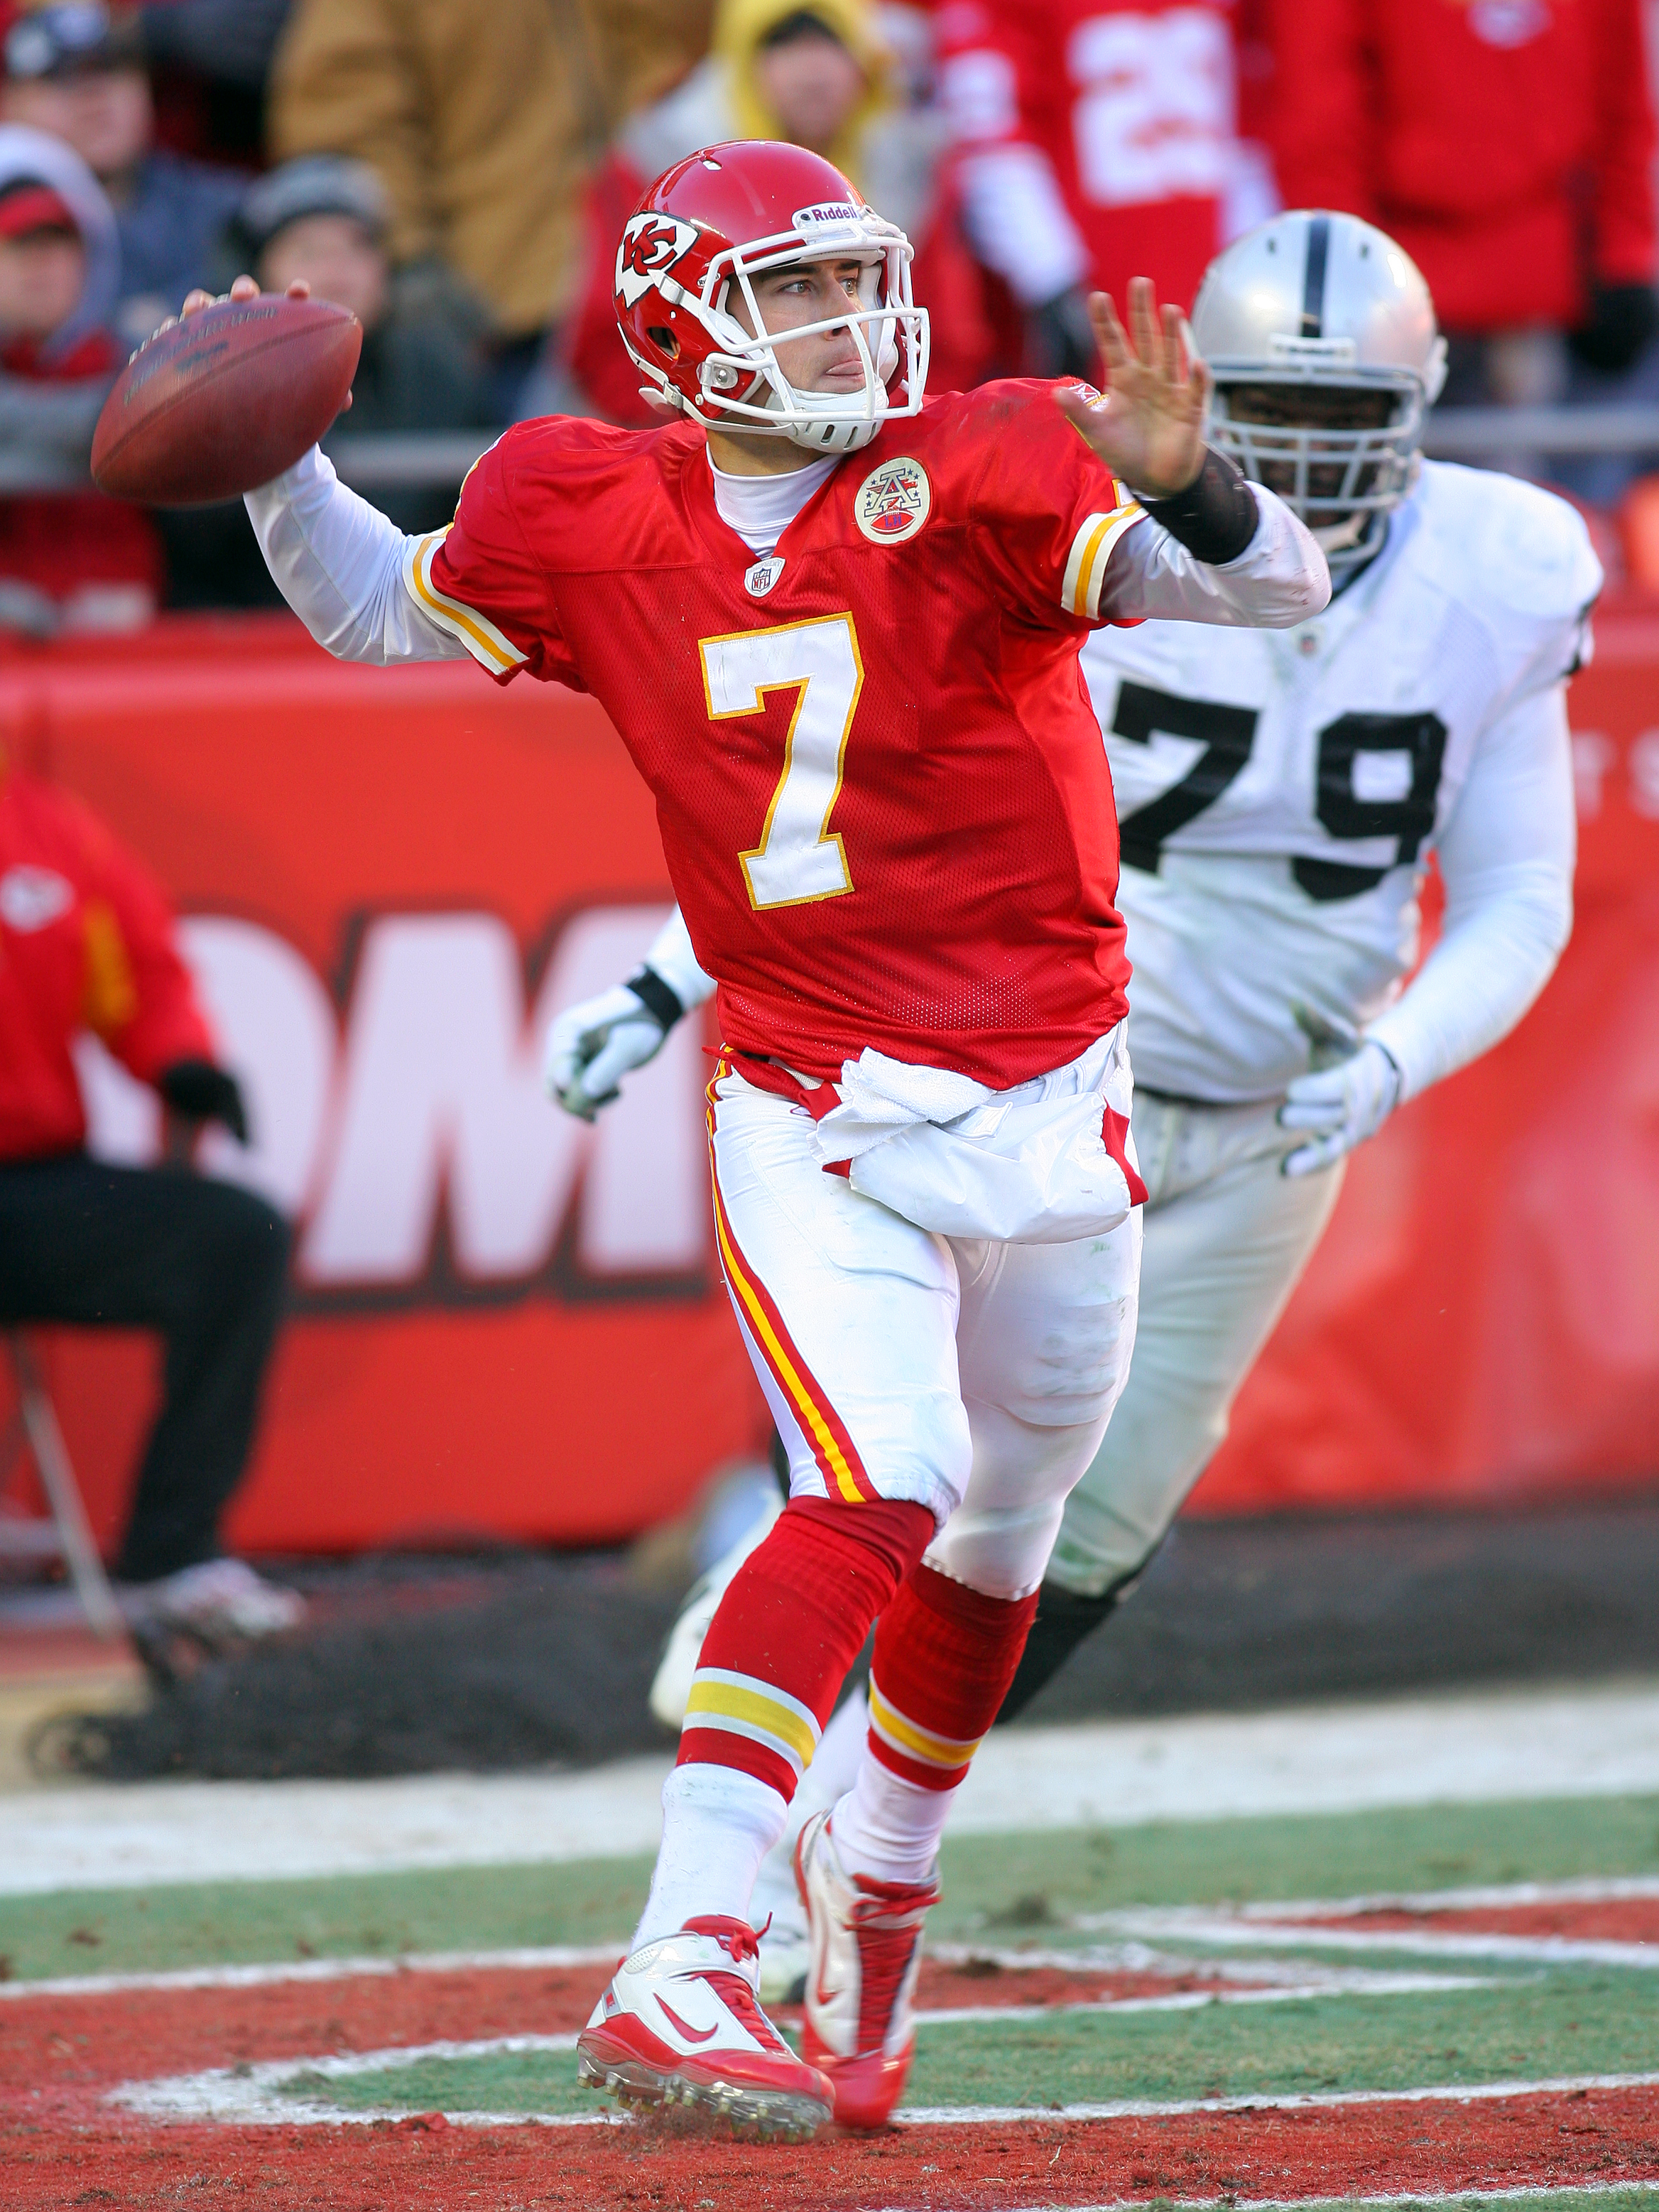 KANSAS CITY, MO - JANUARY 02:  Quarterback Matt Cassel #7 of the Kansas City Chiefs throws an interception in a game against the Oakland Raiders at Arrowhead Stadium on January 2, 2011 in Kansas City, Missouri.  The Raiders won 31-10 (Photo by Tim Umphrey